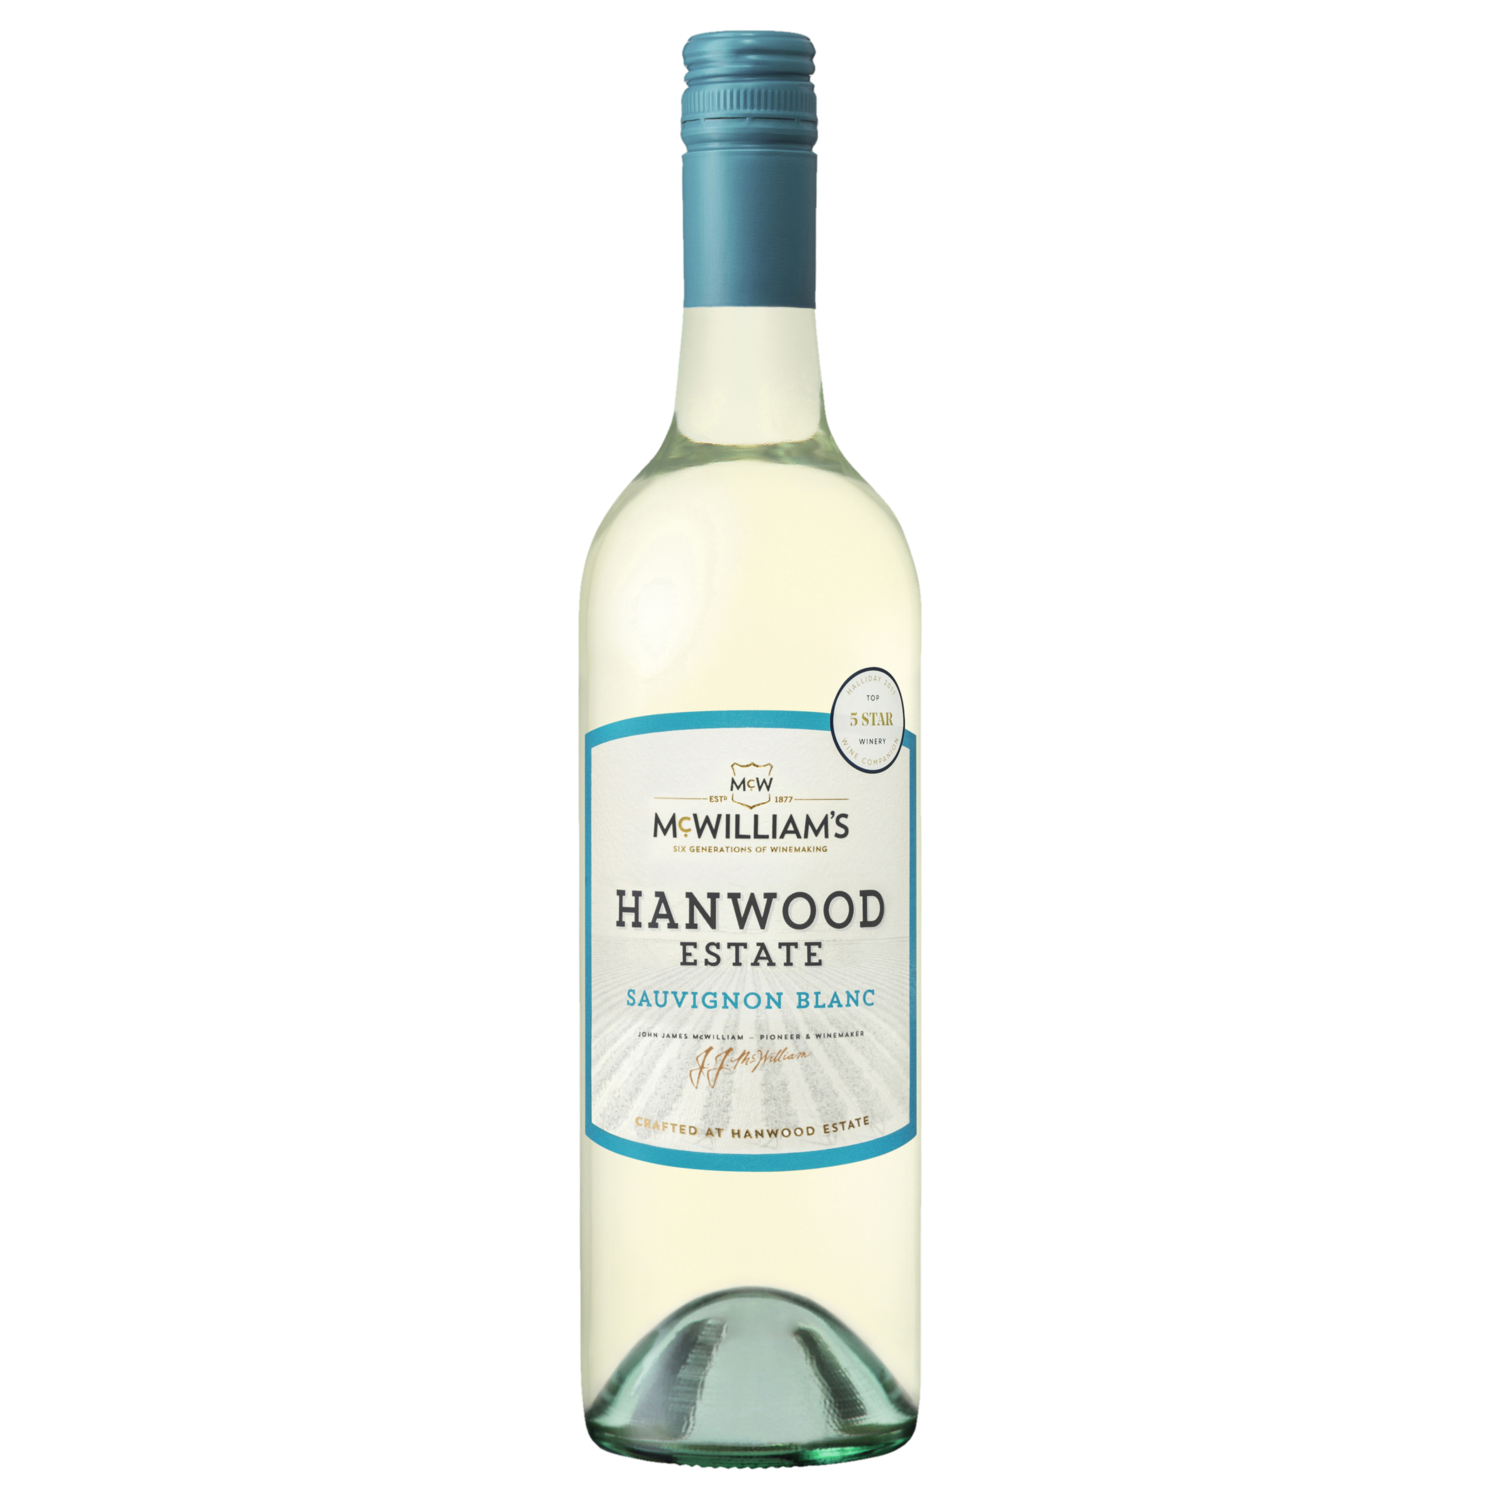 McWilliam's Hanwood Estate Sauvignon Blanc